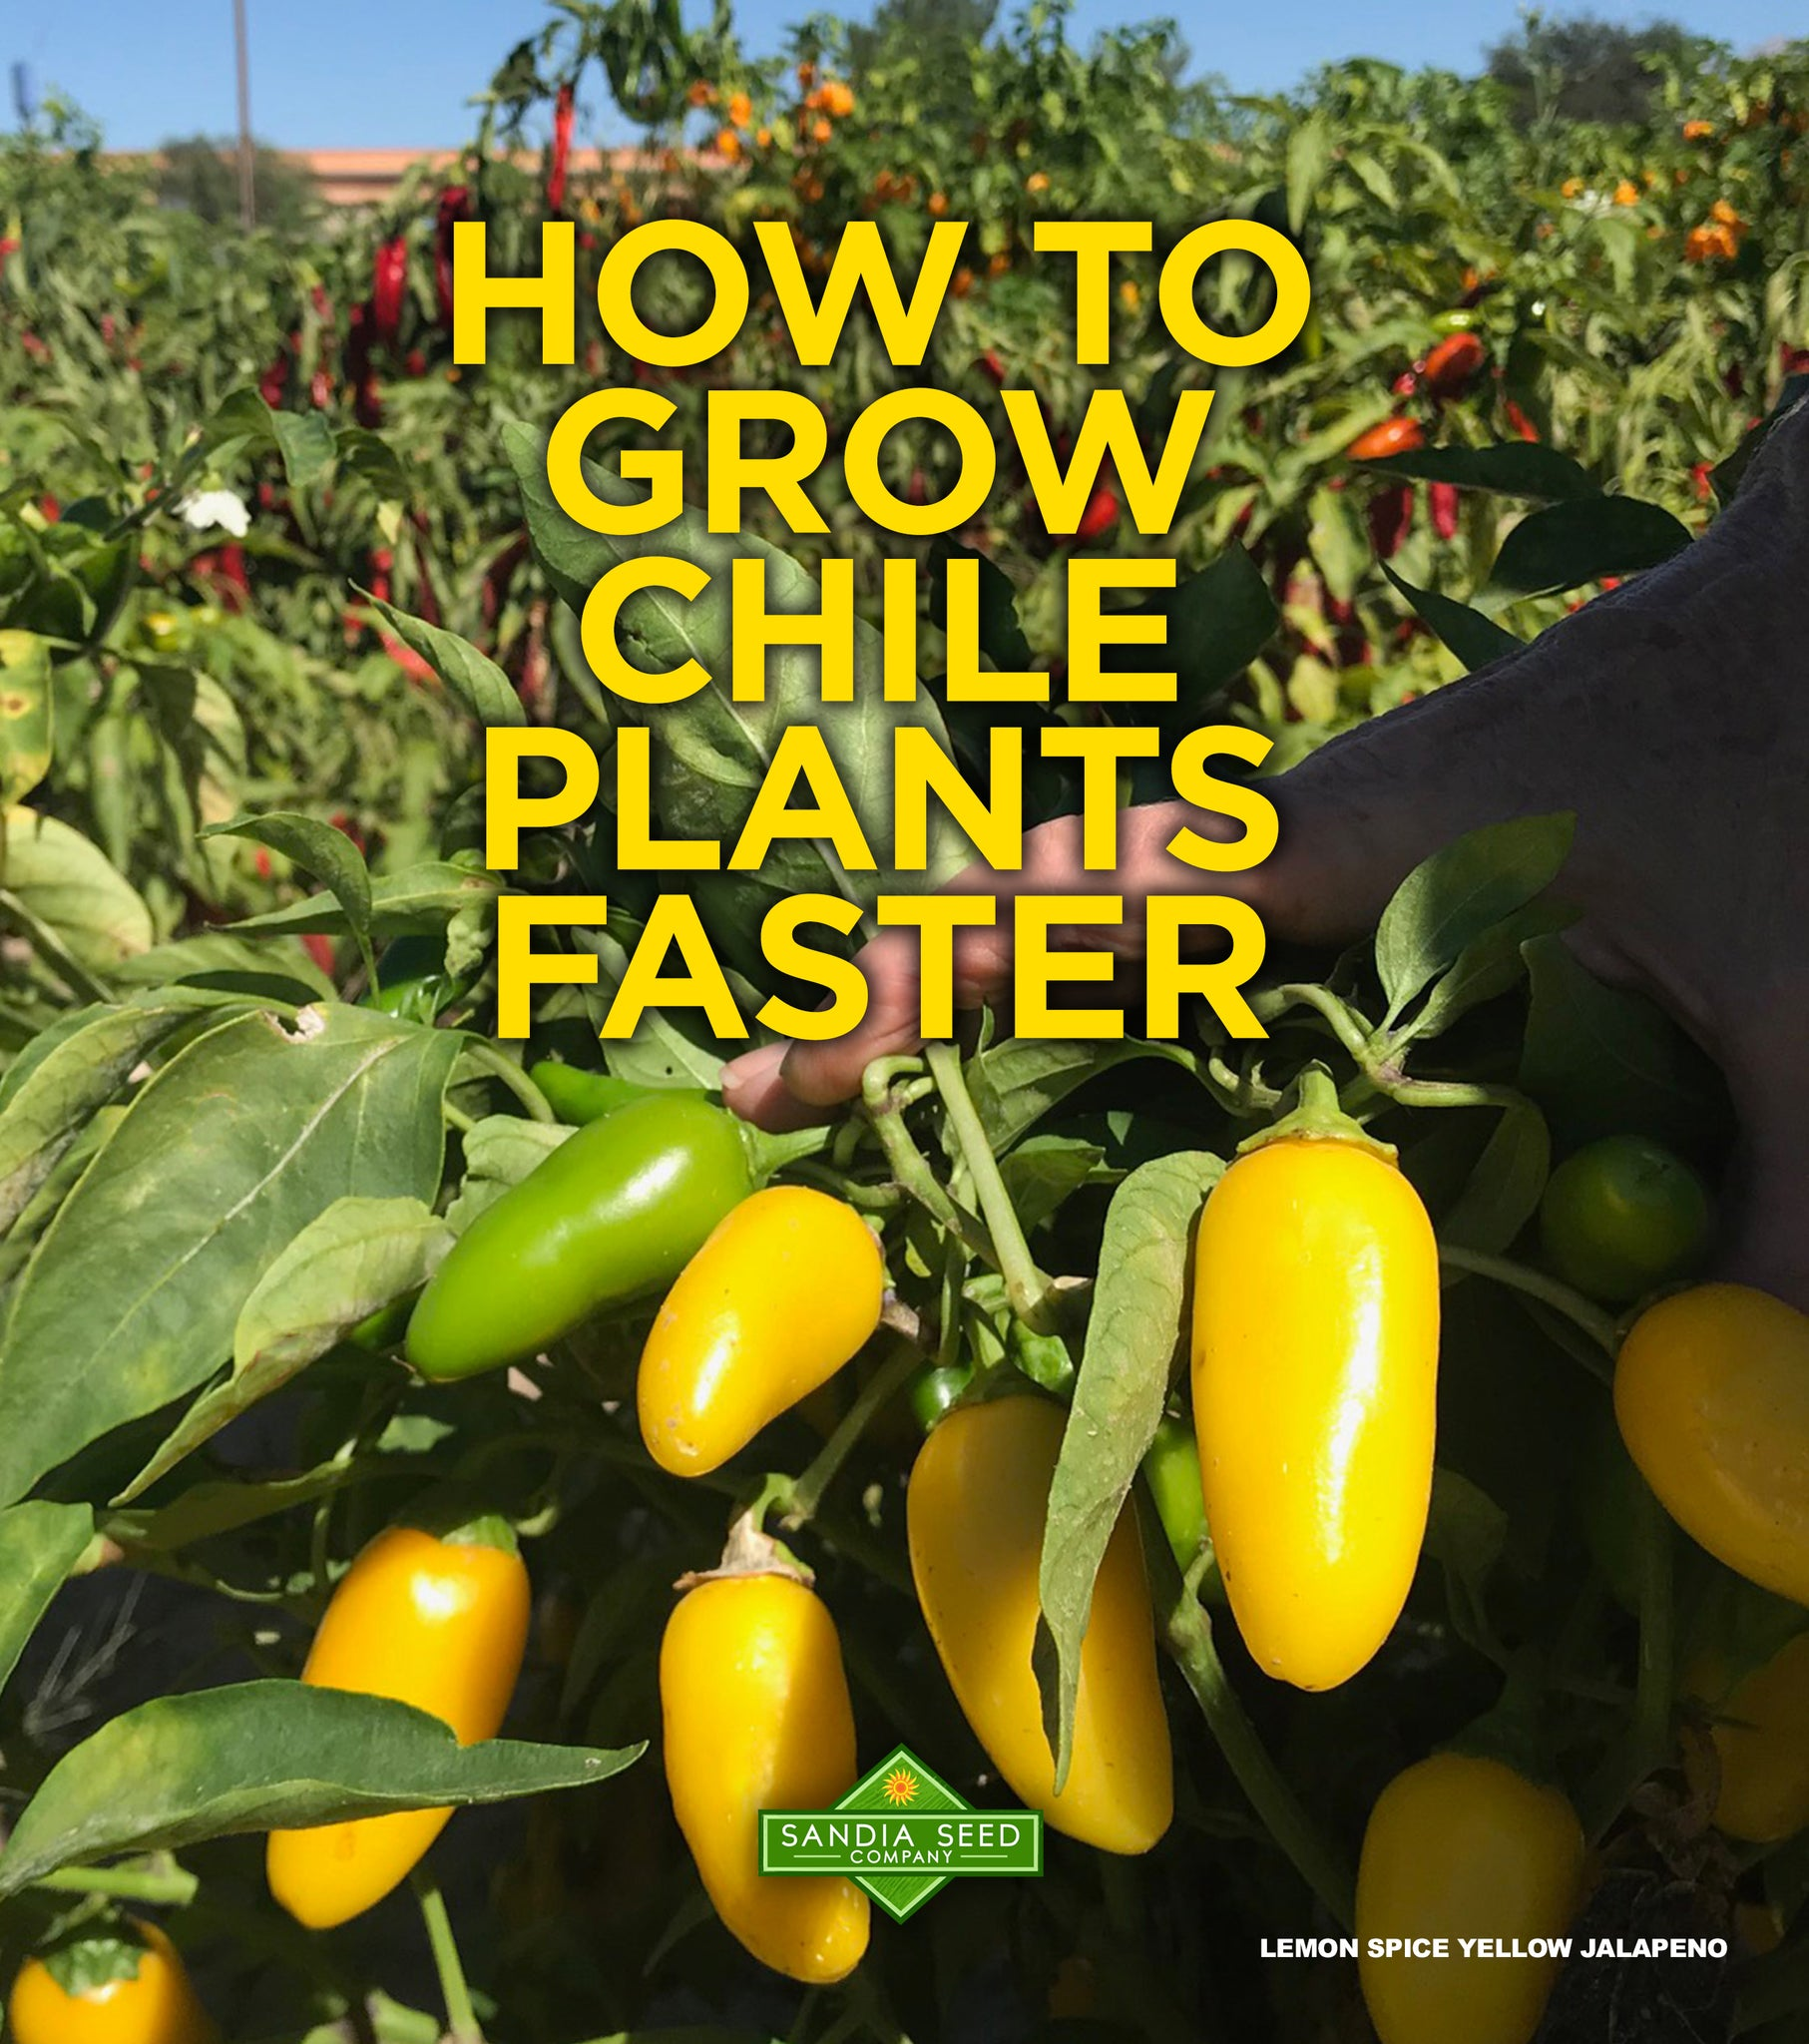 How to Grow Chile Plants Faster